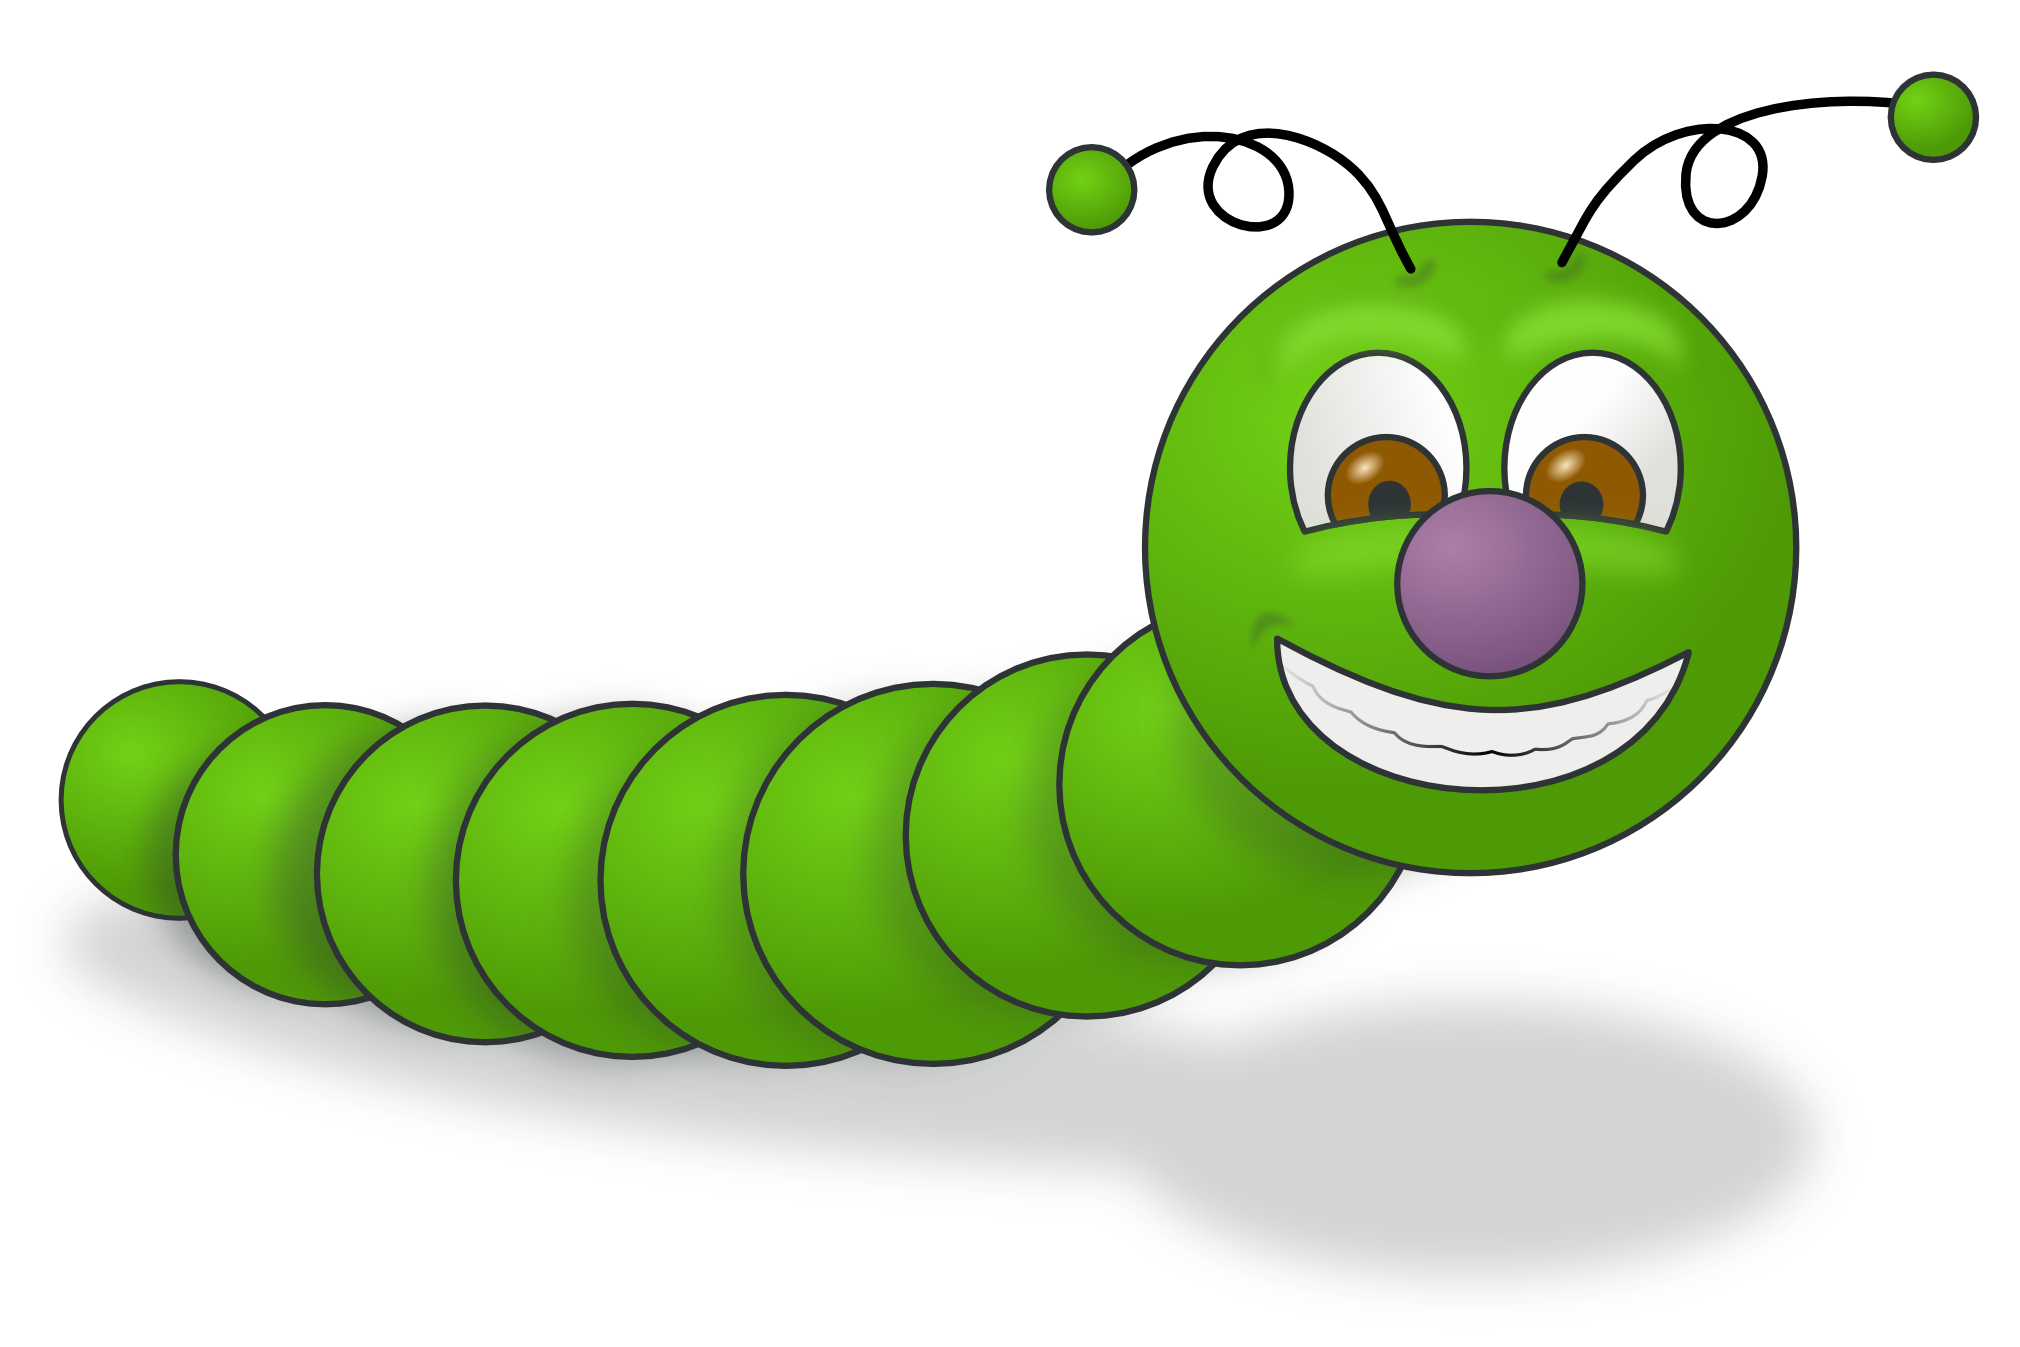 Bug clipart worm Cute  on inchworm Clip